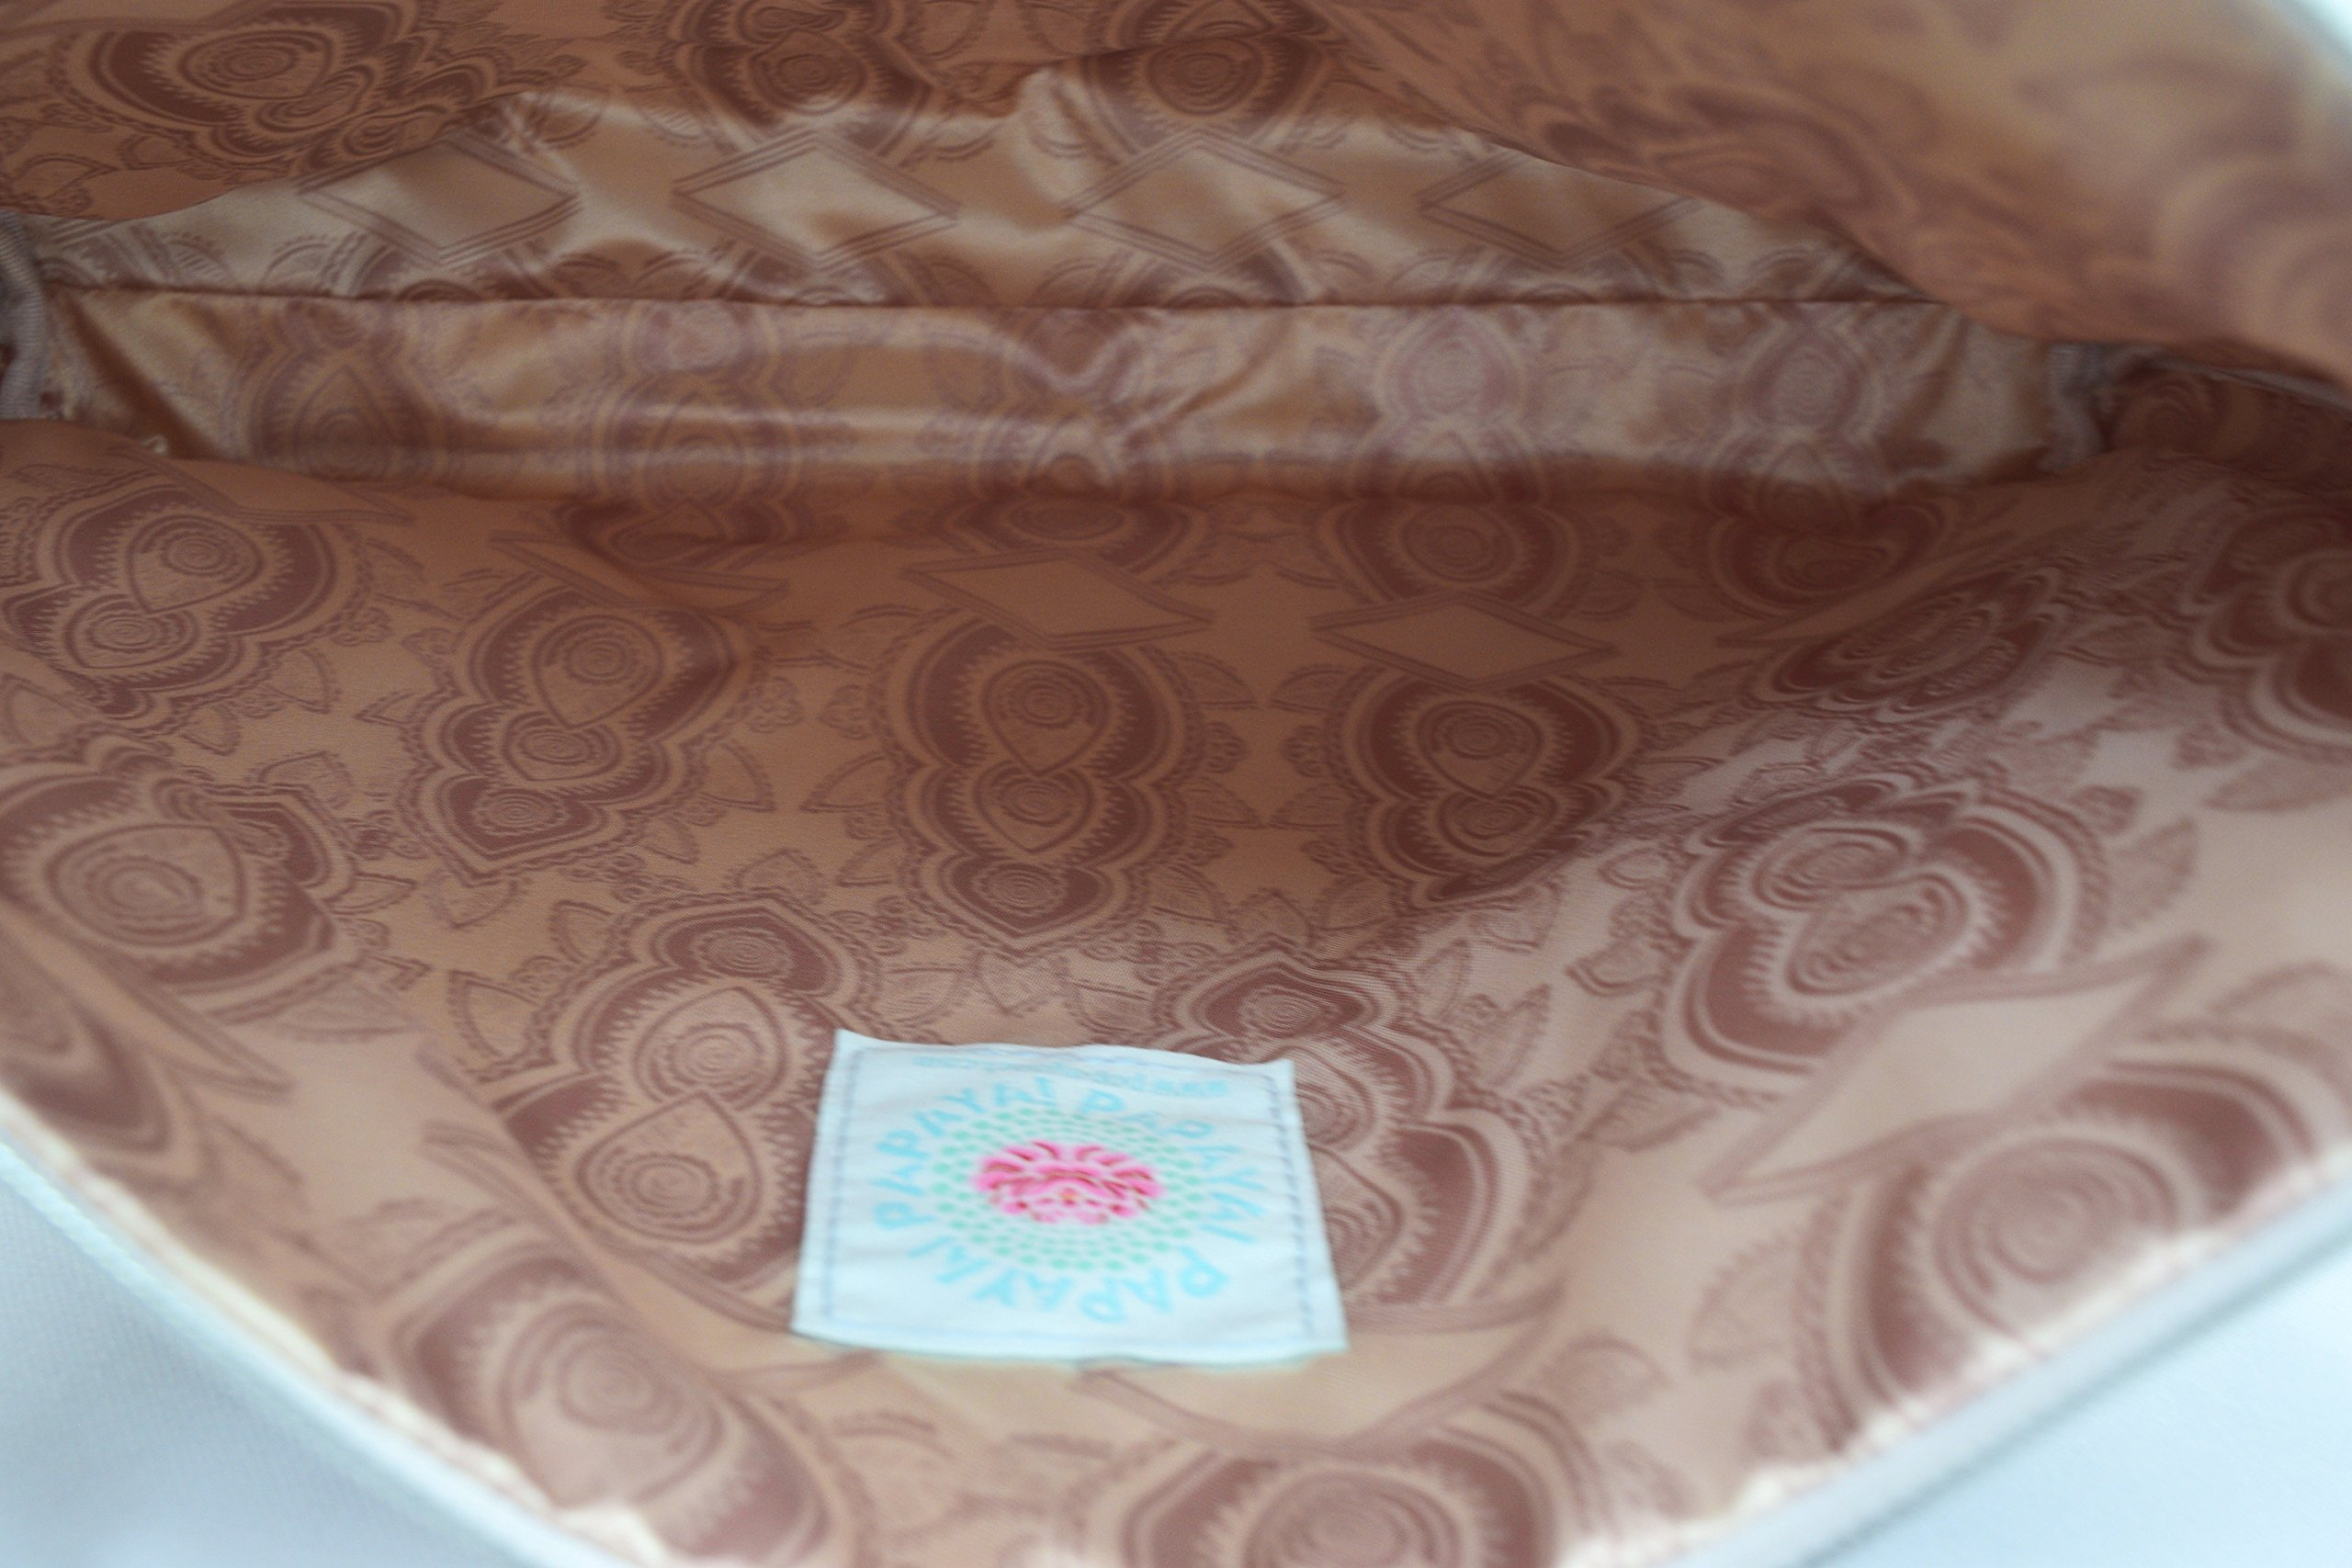 Love Henna Designs Oil Cloth Large Make-up or Accessory Travel Bag by Papaya (Image #4)